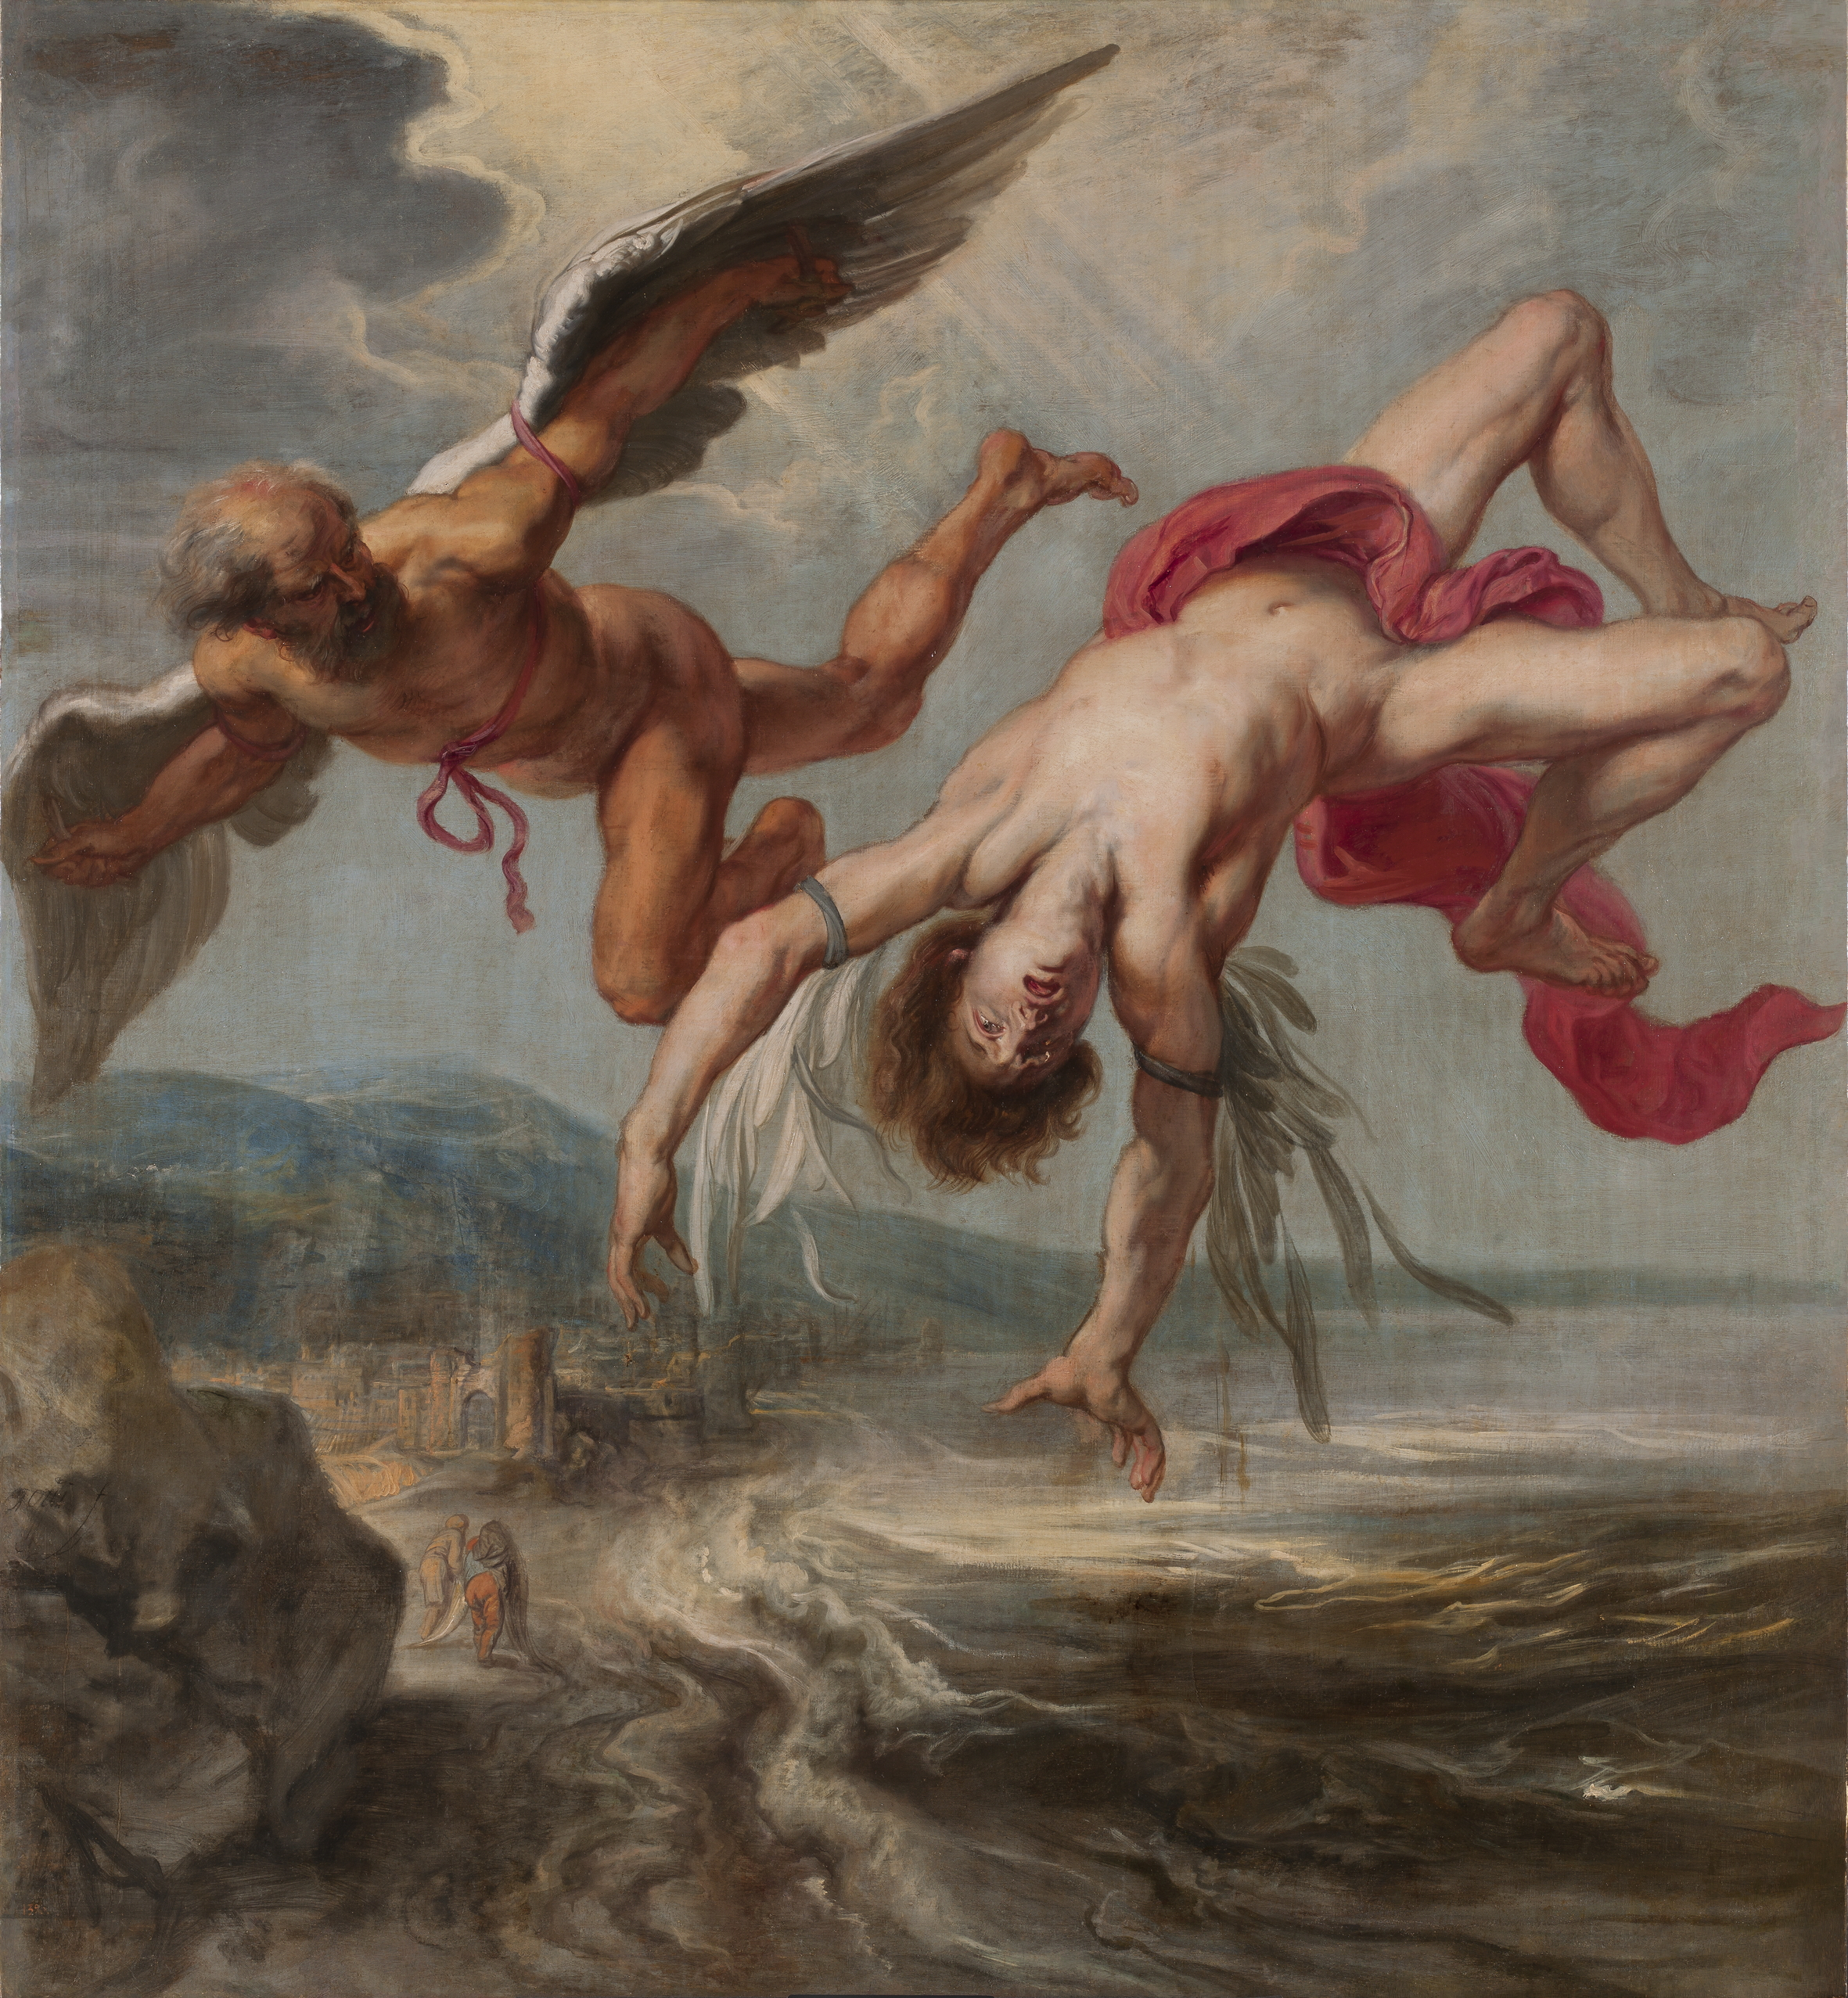 lesson 3 the metamorphoses and later works of art a comparison artwork the flight of icarus by jacob peter gowy